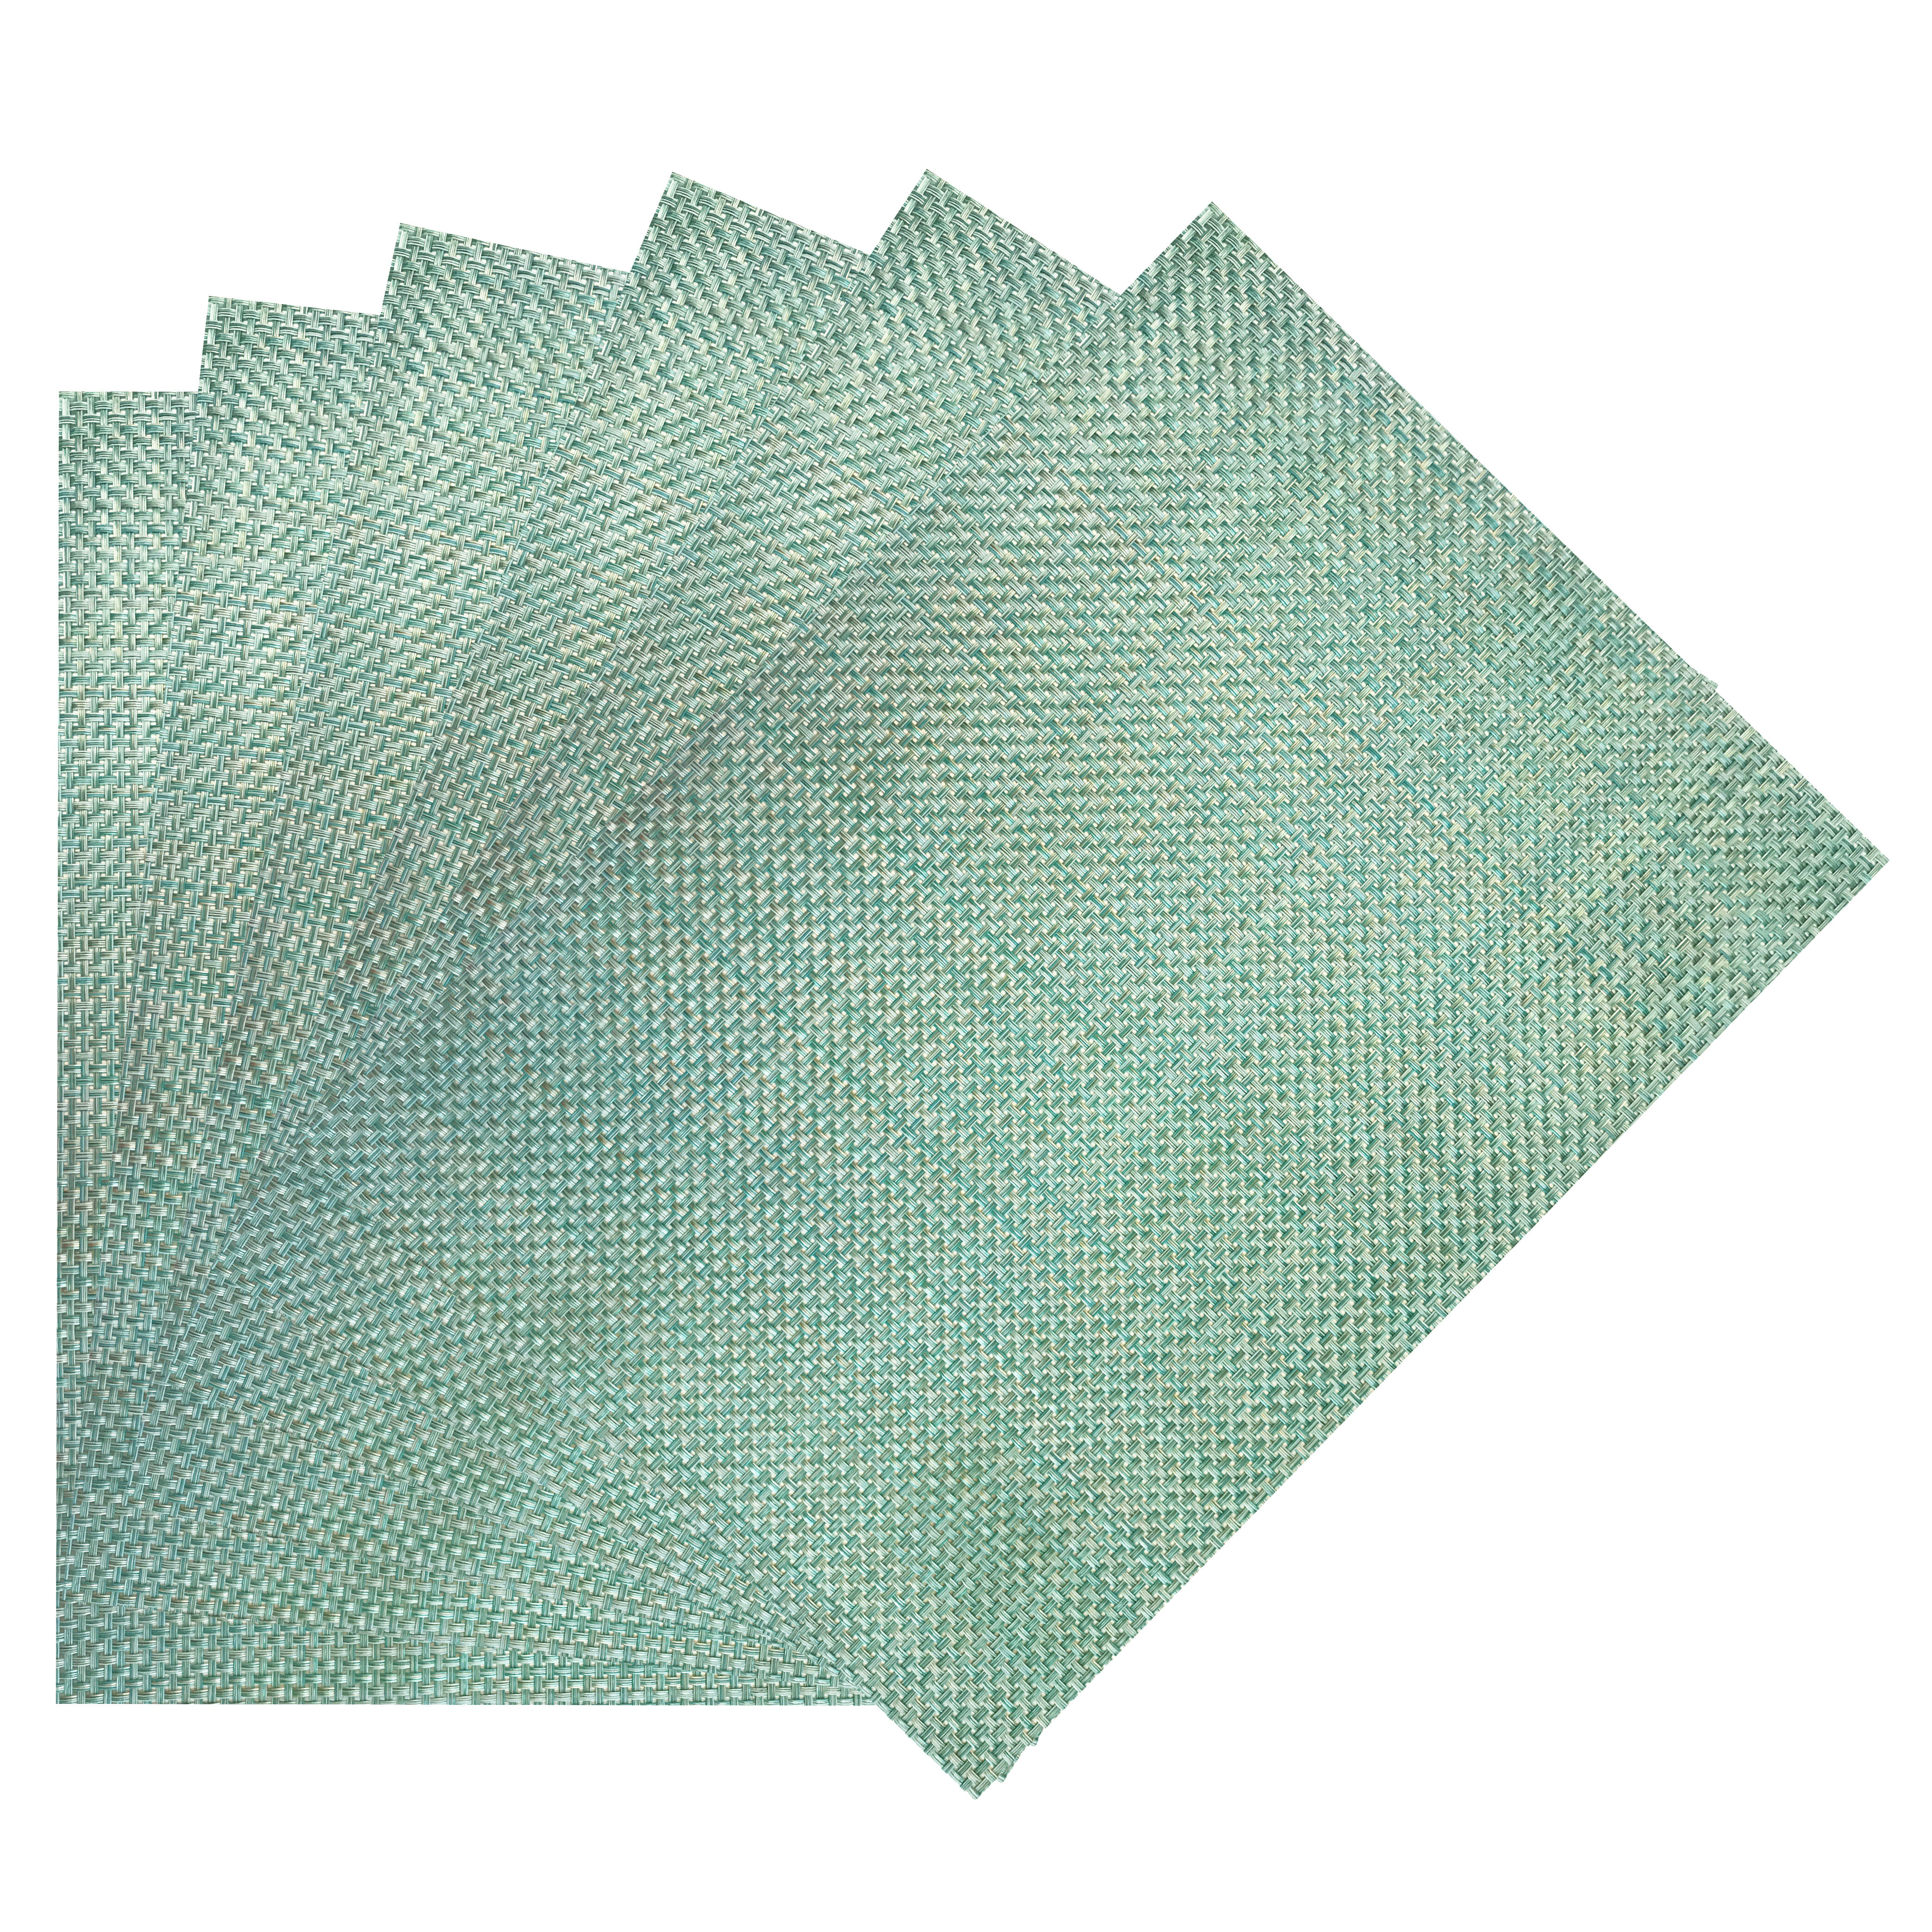 Vinyl Placemats Free Shipping Over 35 Wayfair